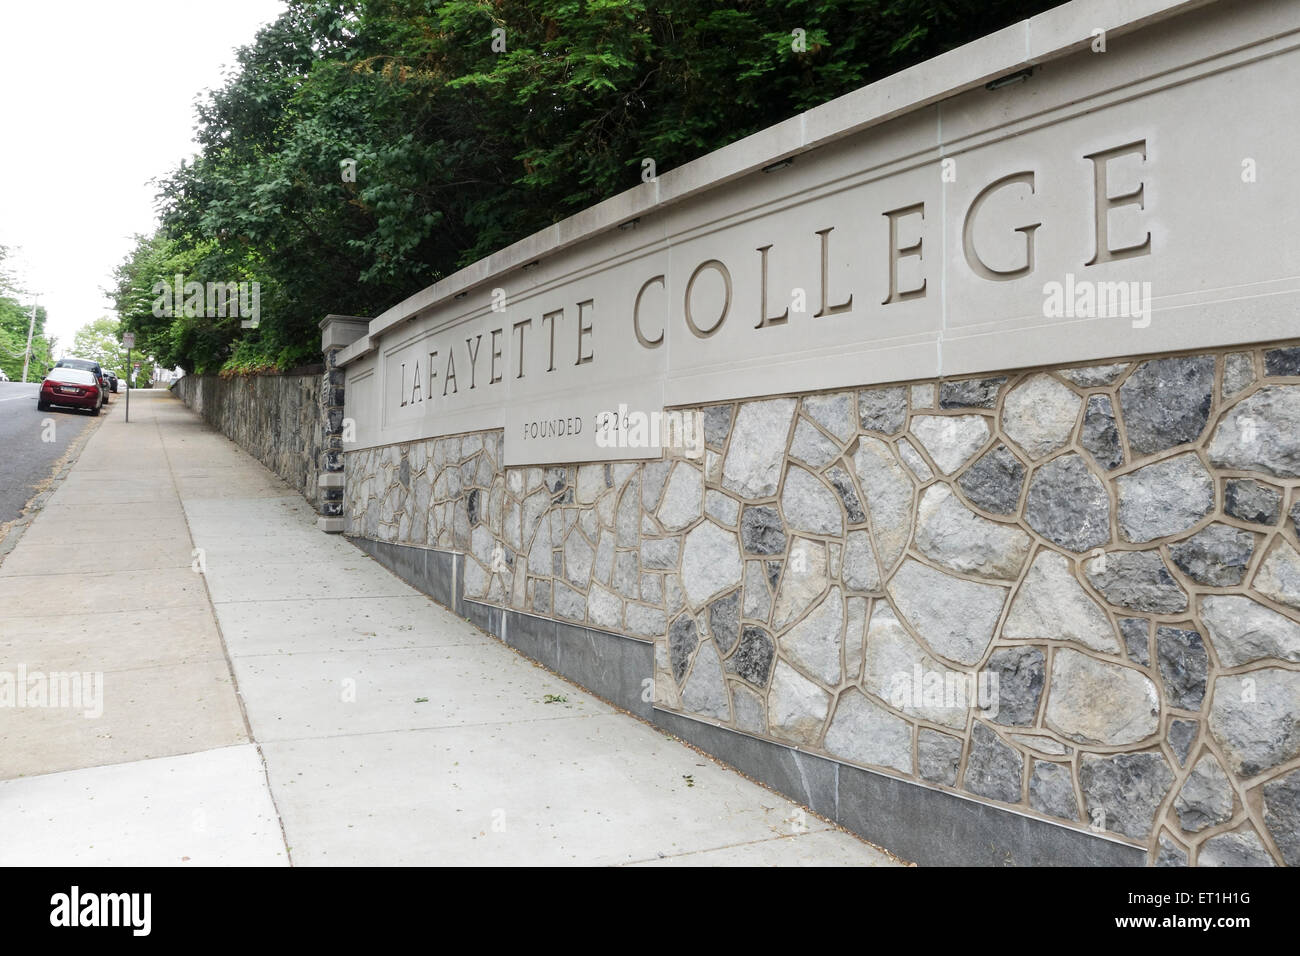 Sign of Lafayette College, private liberal arts college, Easton, Pennsylvania, USA. - Stock Image